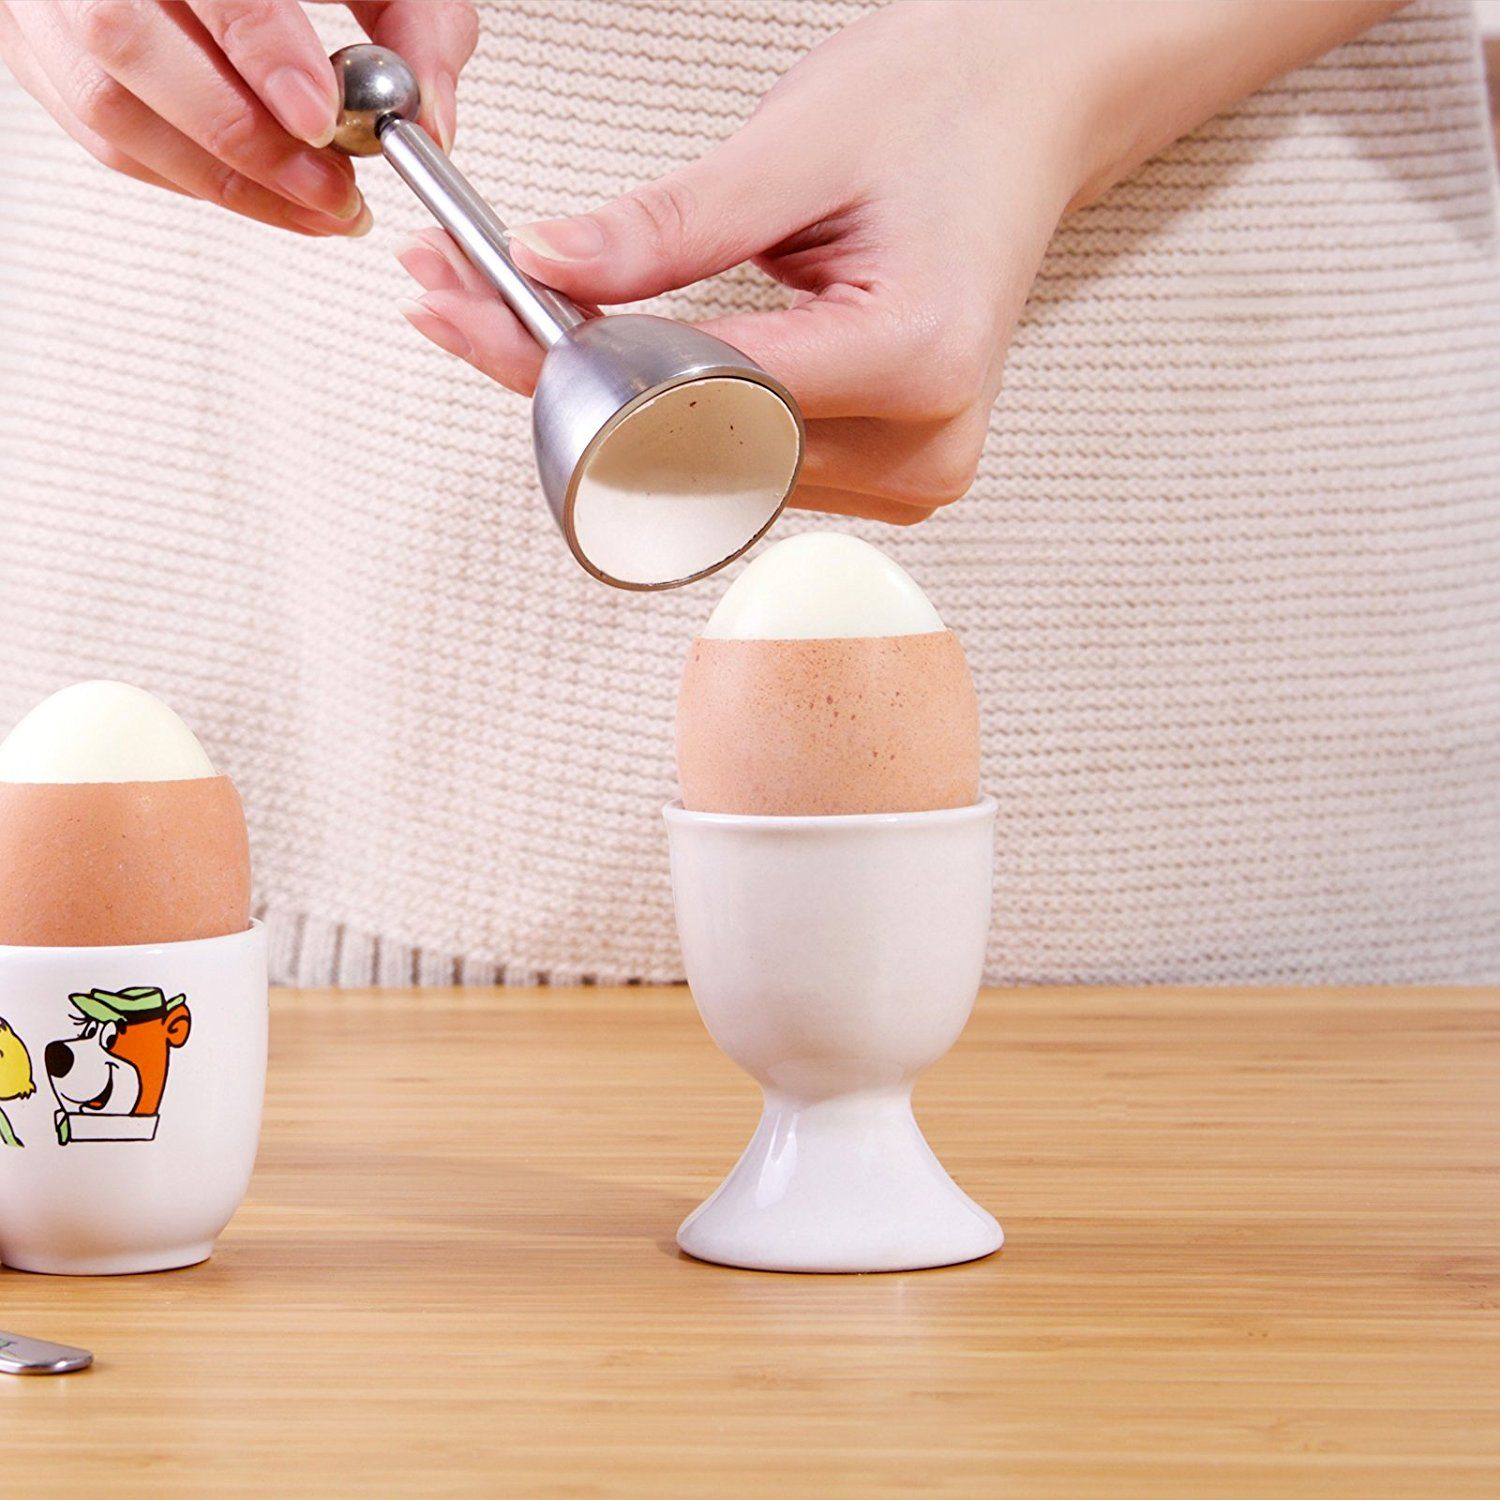 Silver Stainless Steel ICO Egg Topper and Cracker for Perfect Soft Boiled Eggs